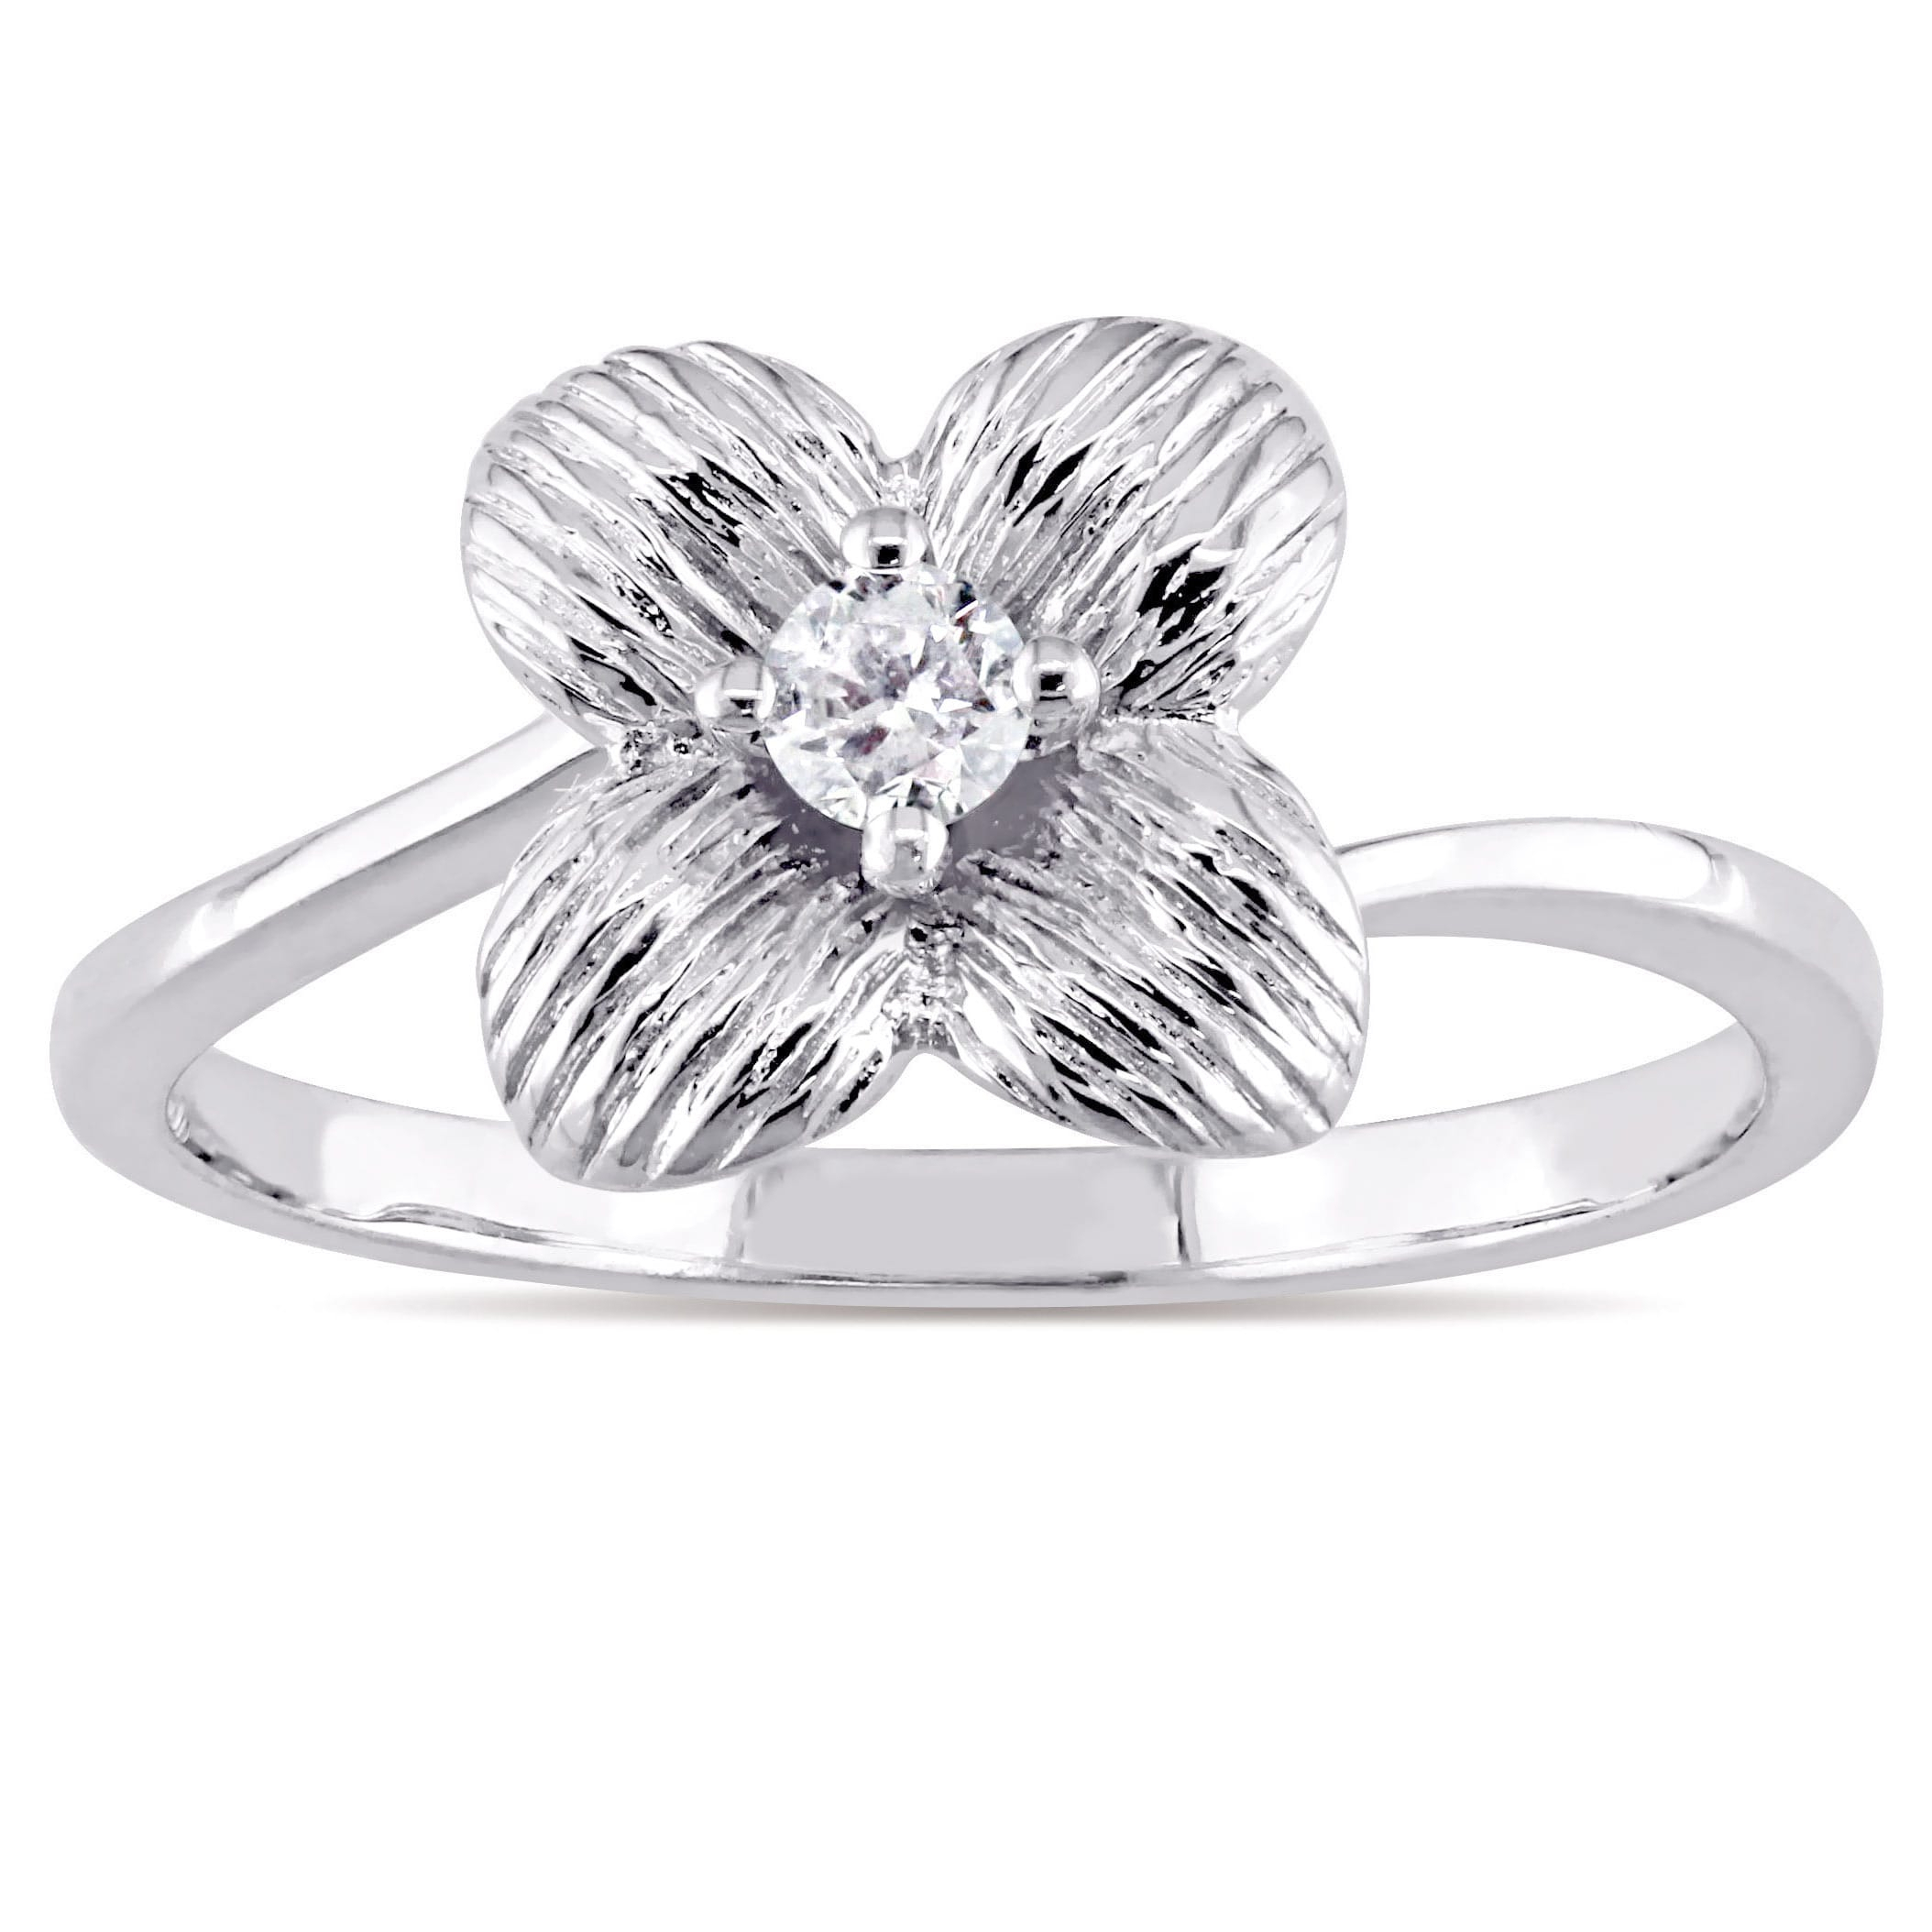 10K White Gold 1/10Ct Tdw Diamond Textured Four Petal Flower Ring Pertaining To Current Four Petal Flower Rings (Gallery 20 of 25)